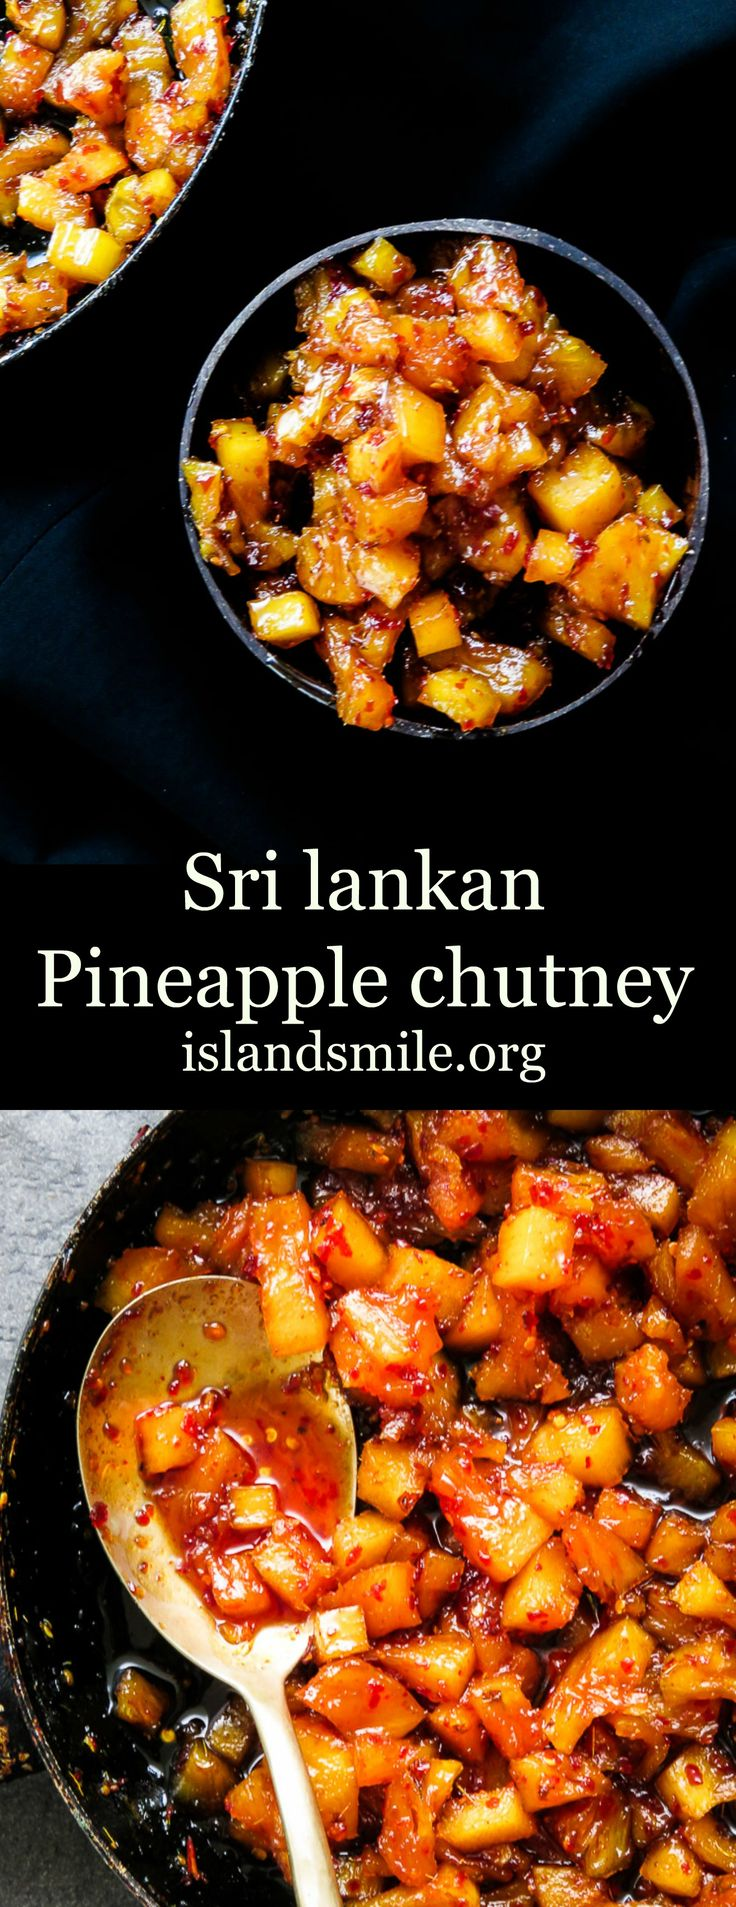 """This Sri Lankan pineapple chutney is what we call a """"rice puller"""", meaning the more chutney the more you'll want to eat.  you can even include them in your burgers or tacos, it's versatile that way."""